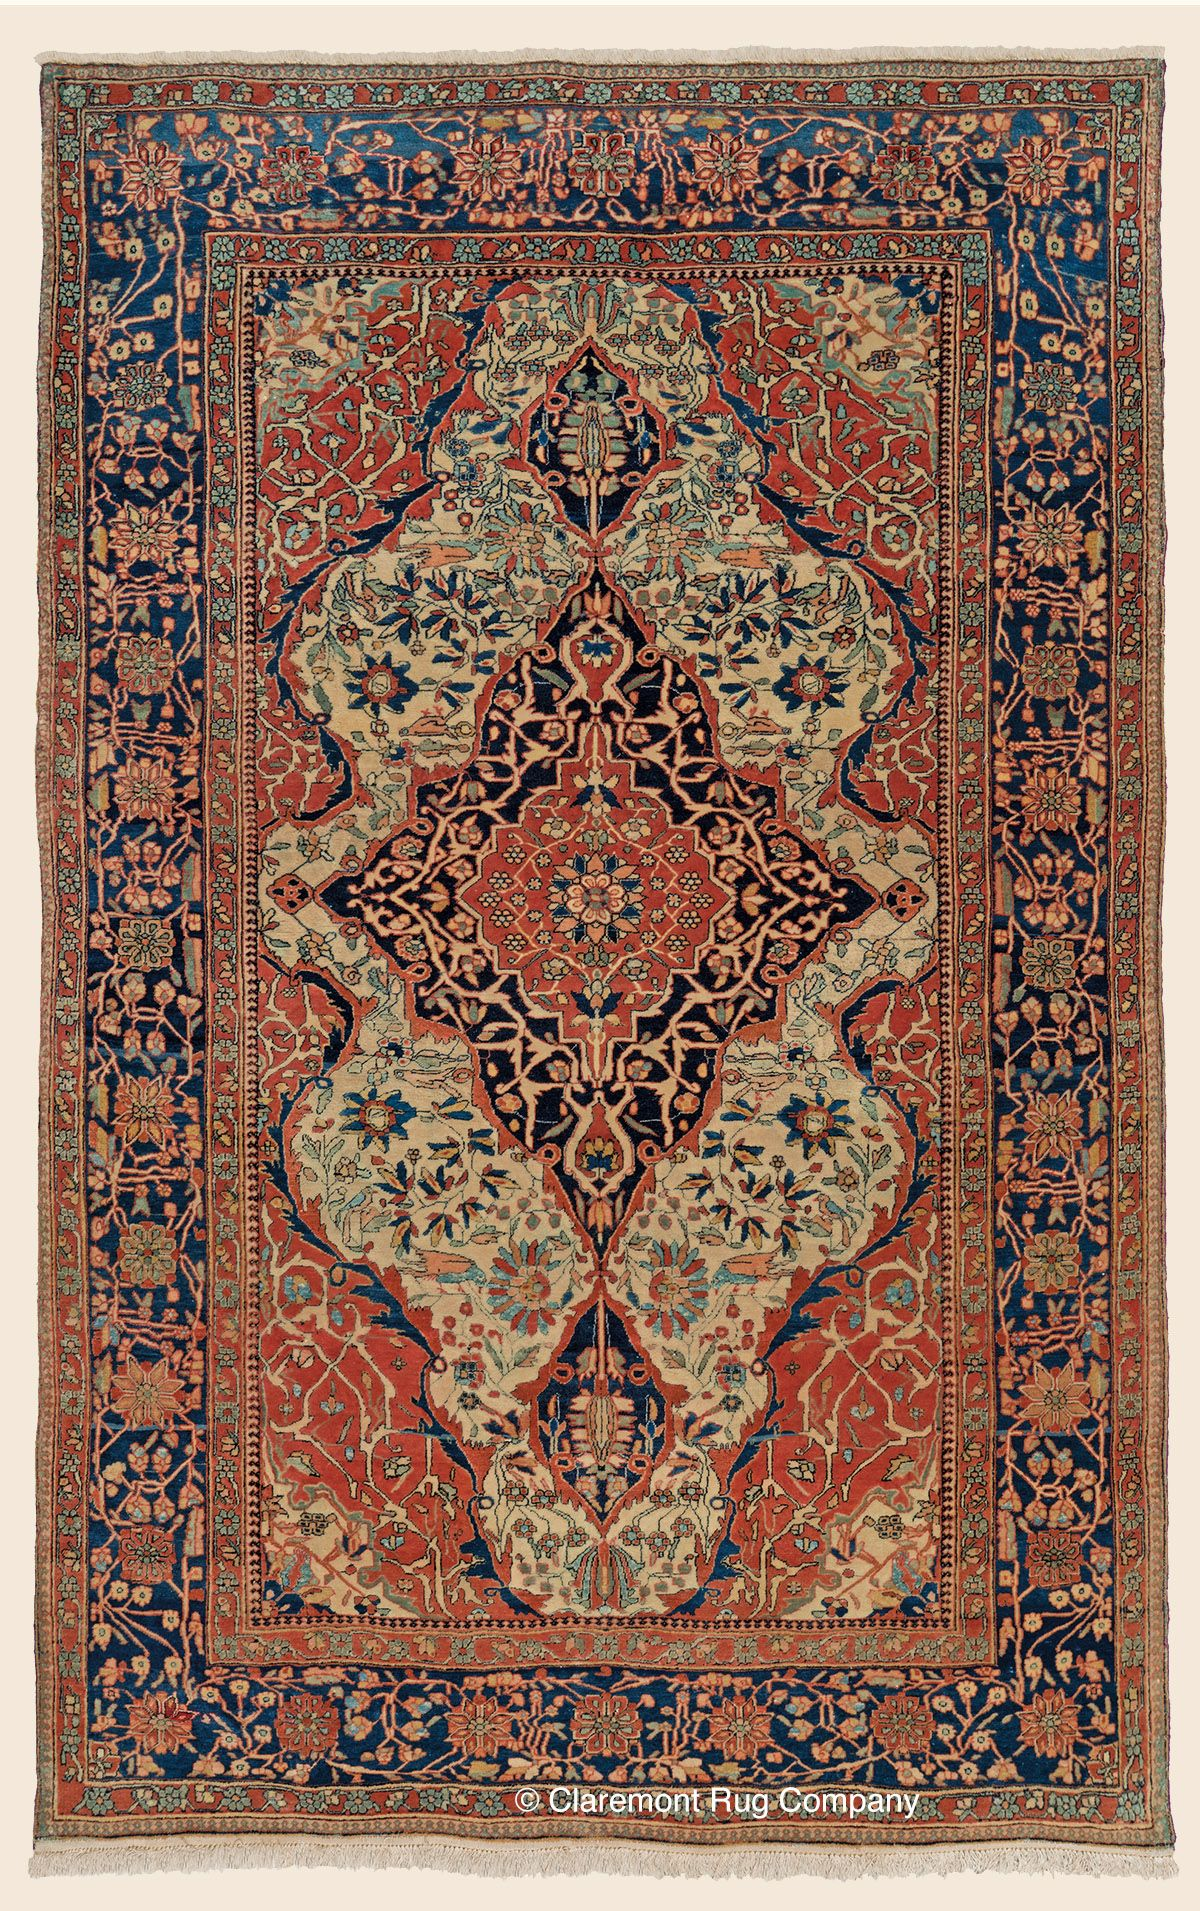 Mohtasham Kashan 4 4 X 6 10 Late 19th Century Central Persian Antique Rug Claremont Rug Company Click To Lea Rugs Rugs On Carpet Claremont Rug Company